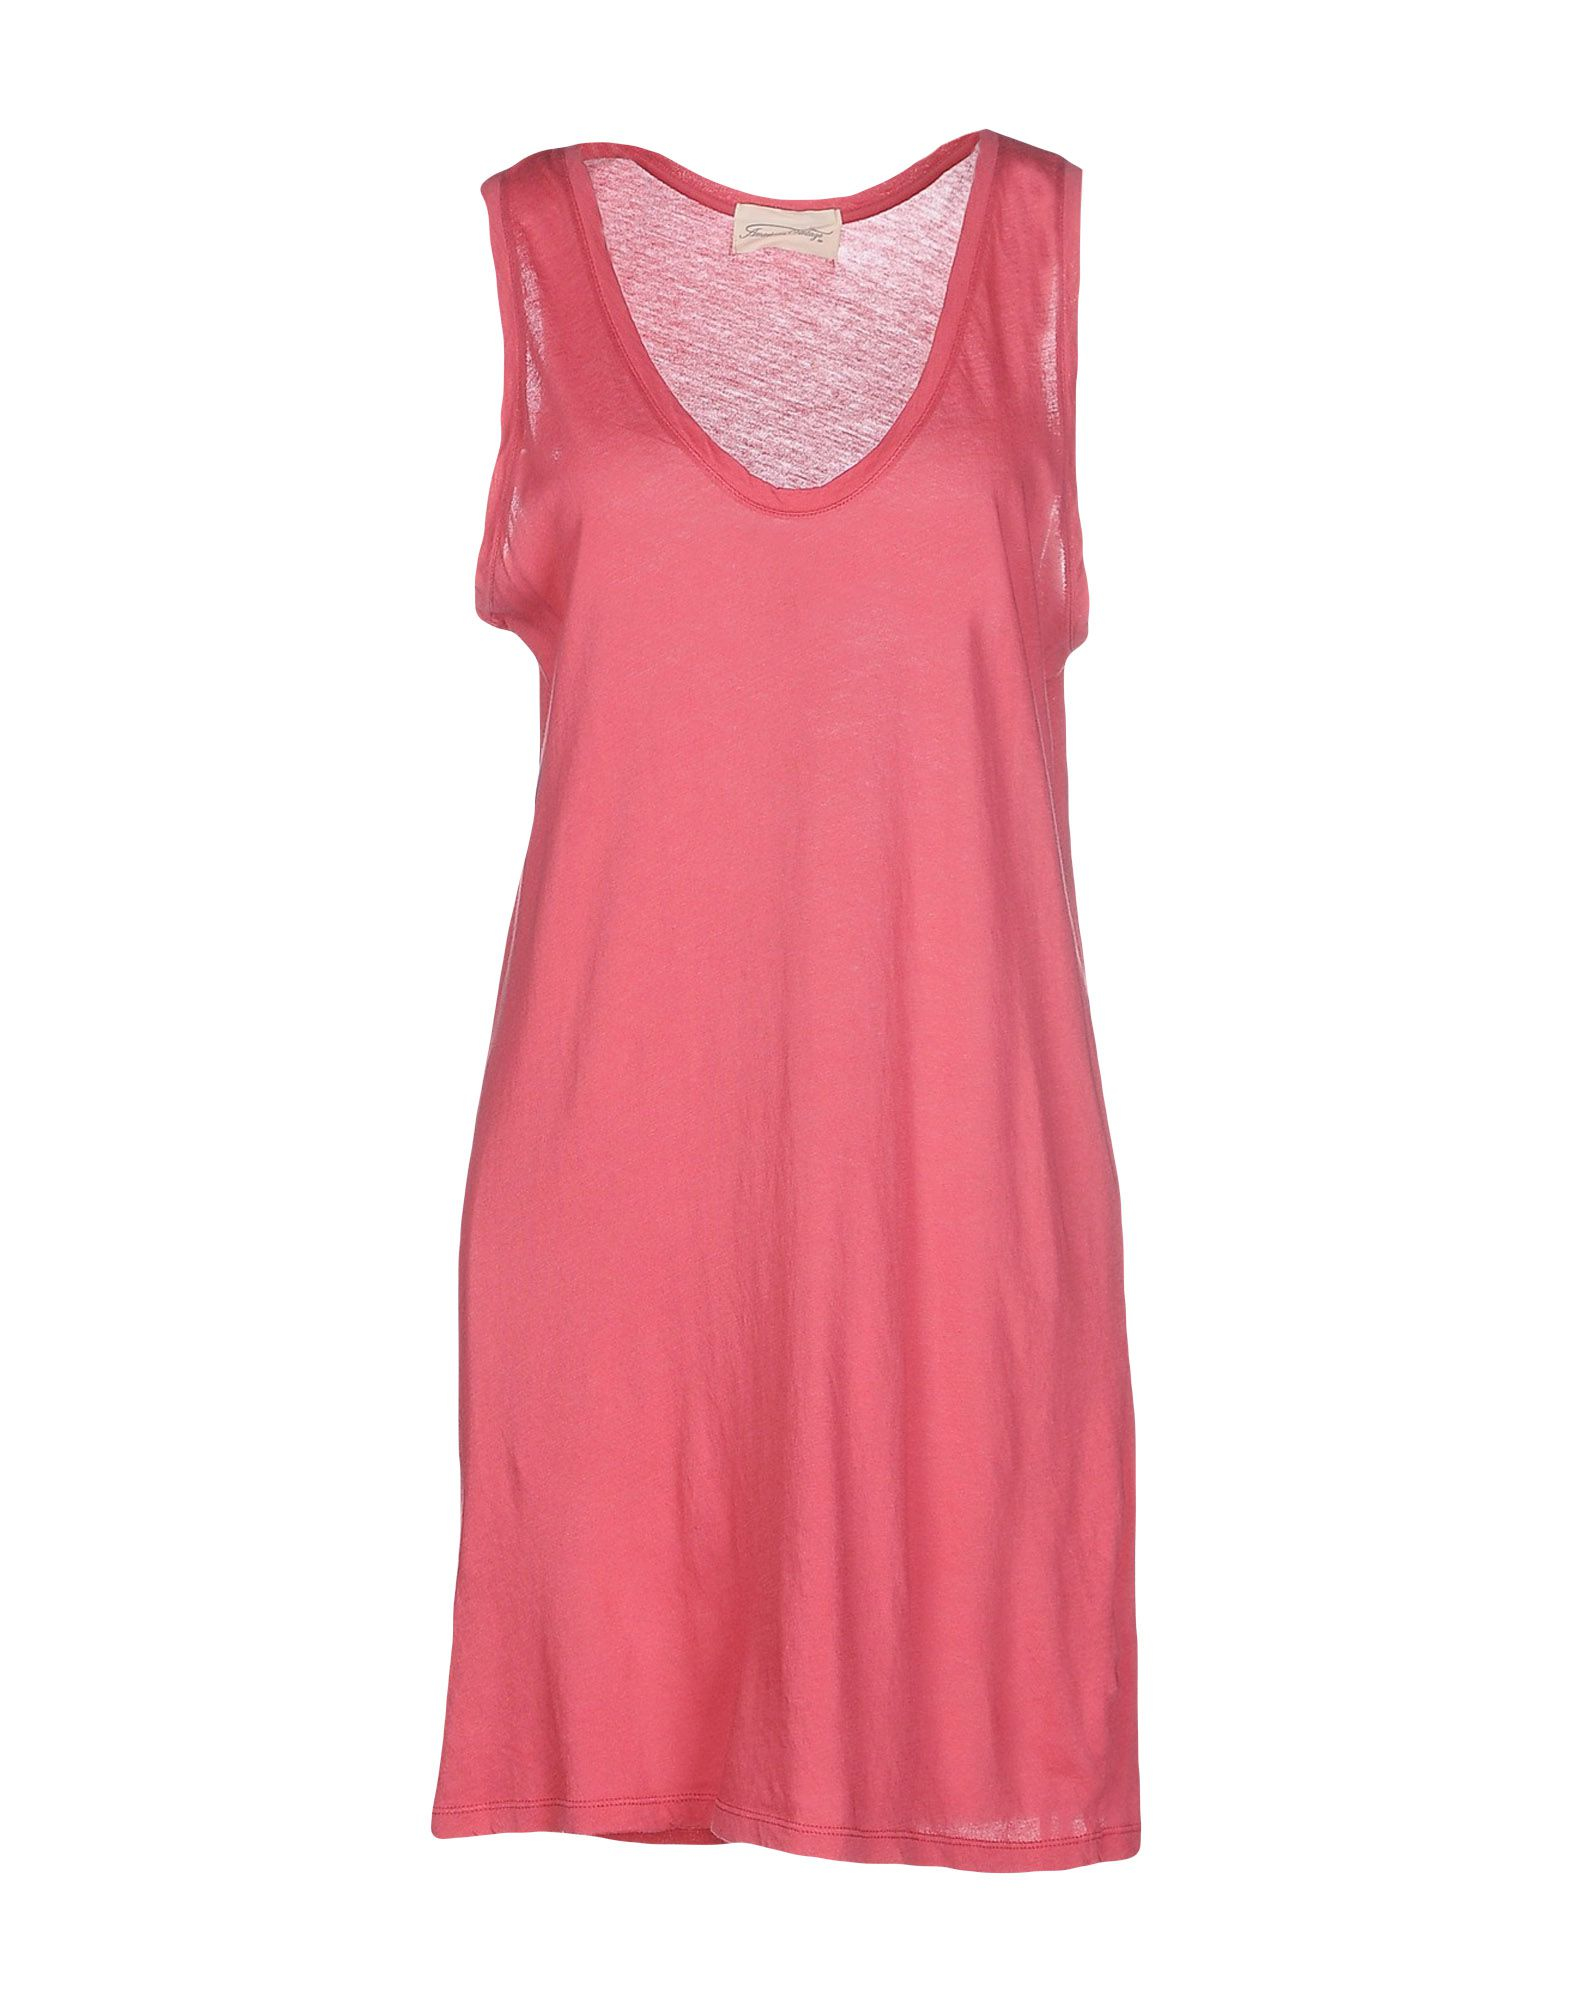 American Vintage Short Dress In Pink Pastel Pink Lyst